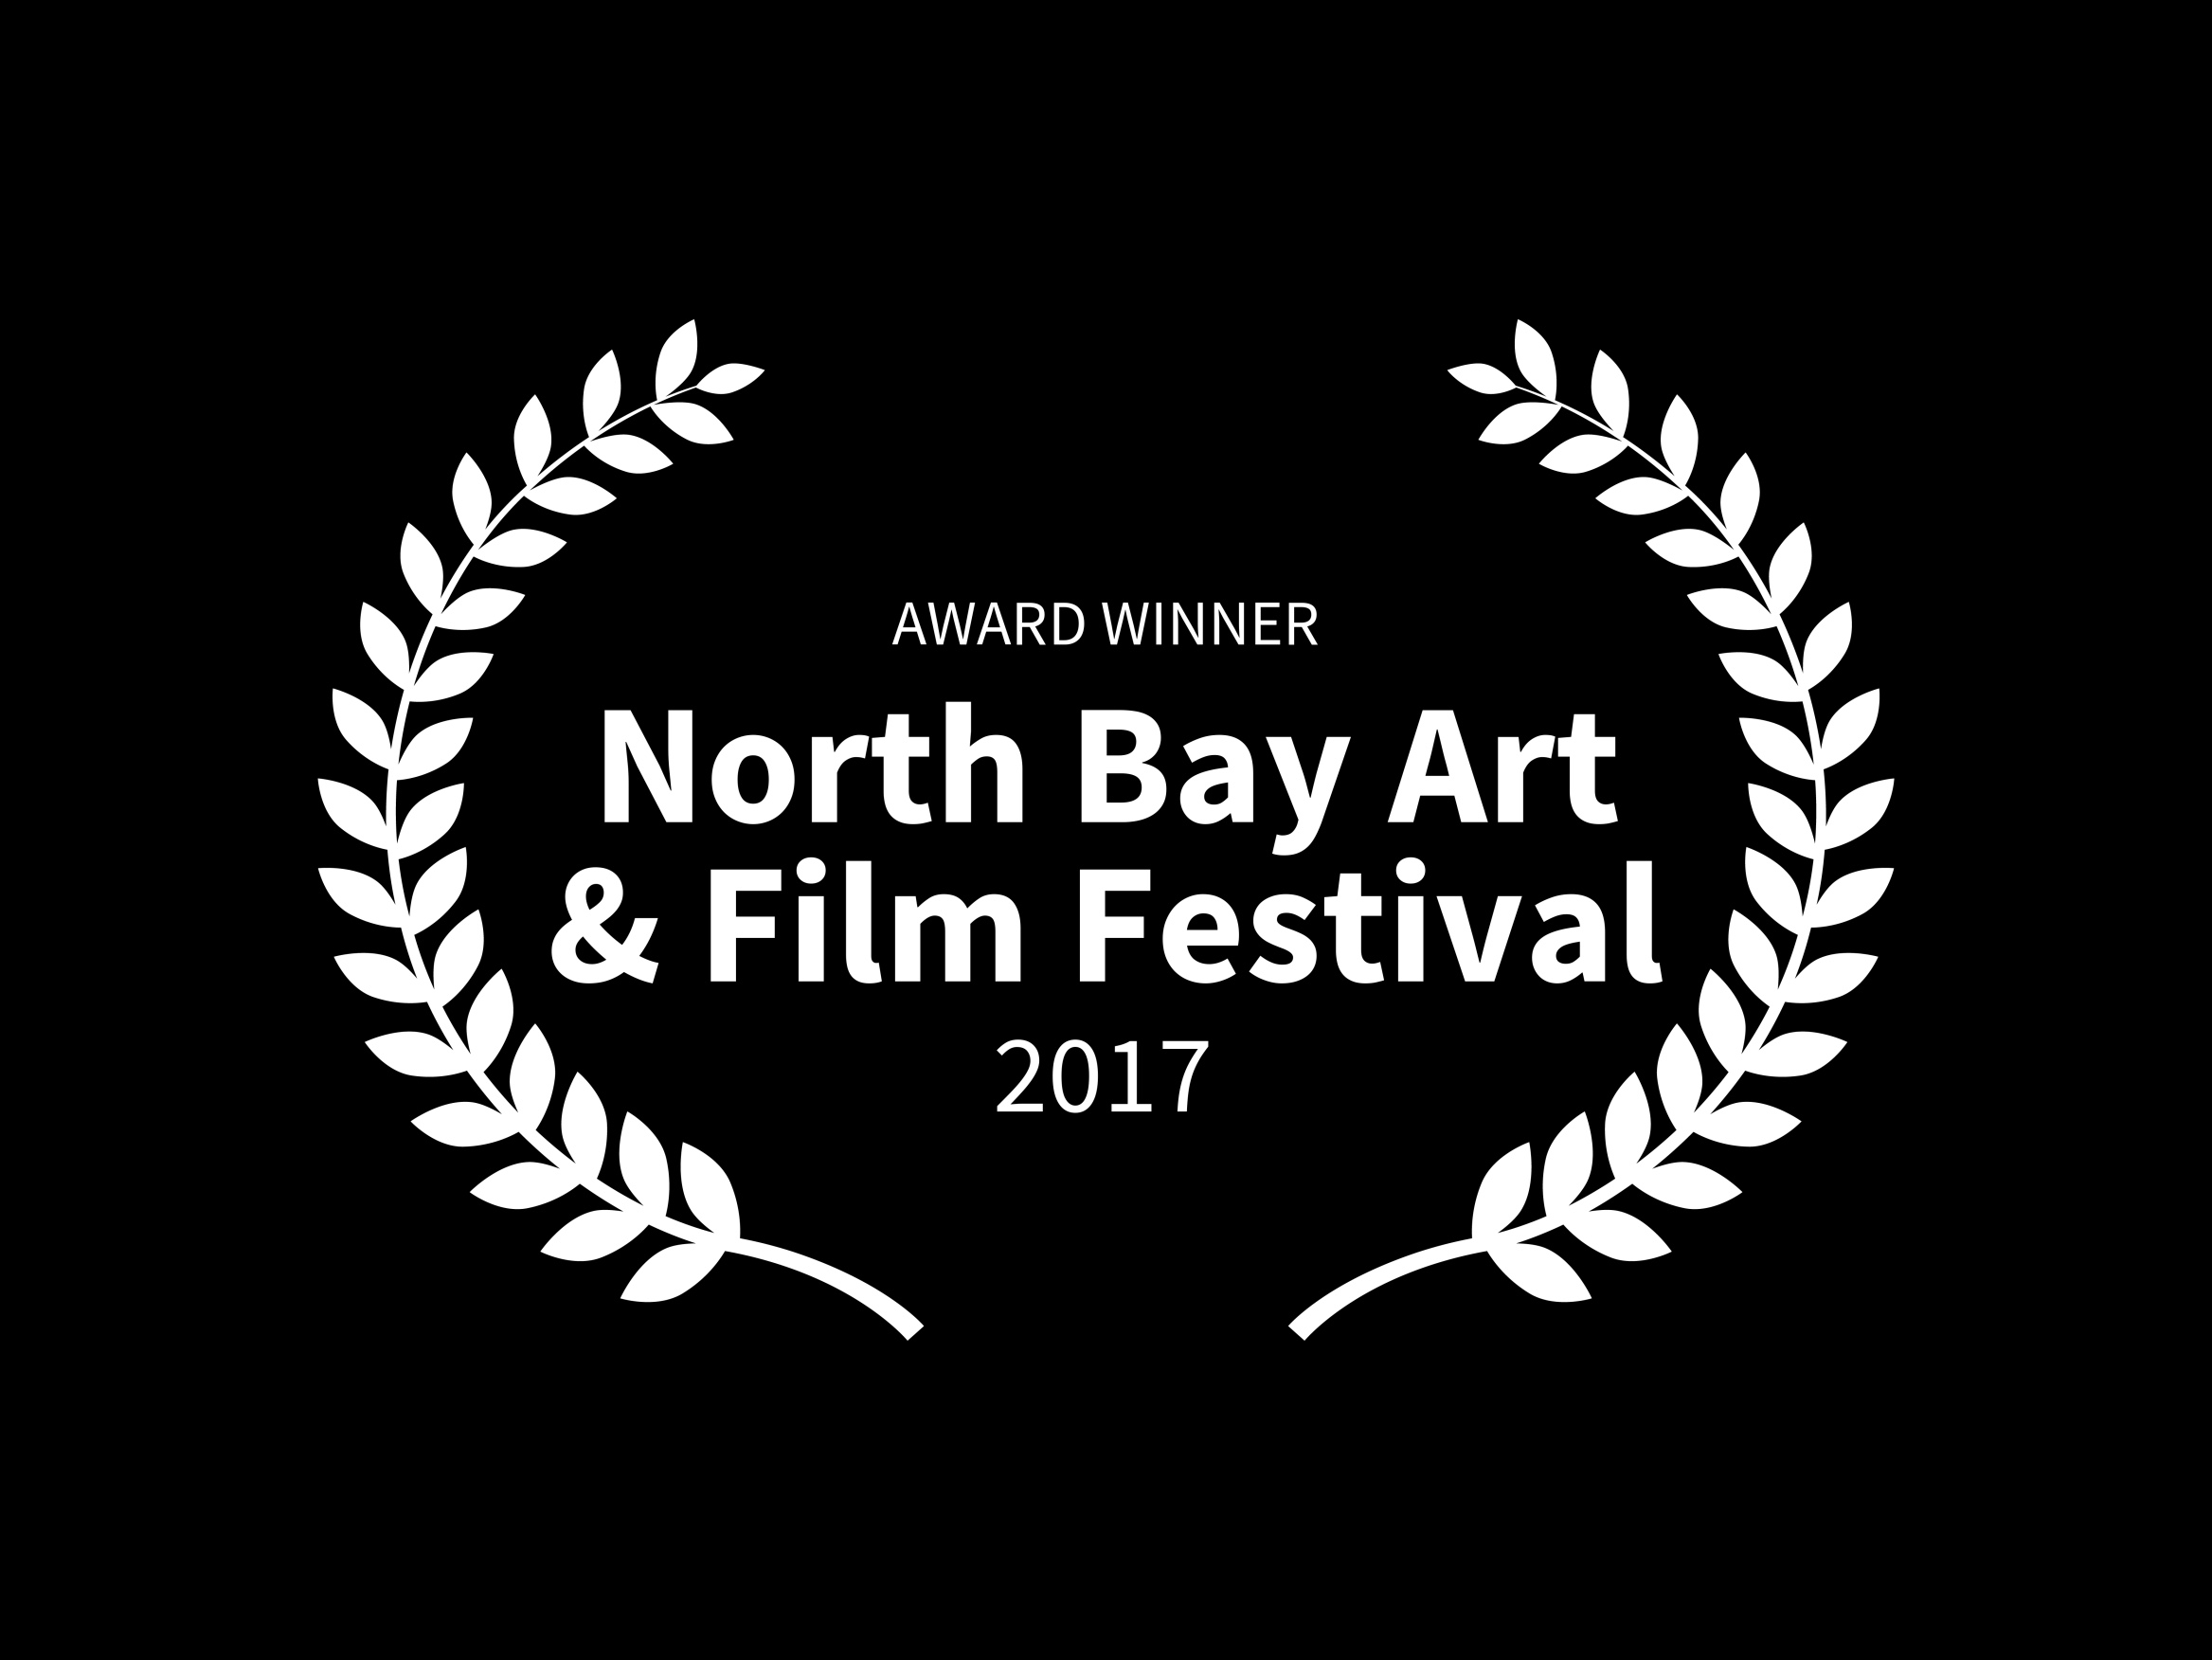 AWARD WINNER - North Bay Art  Film Festival - 2017.jpg